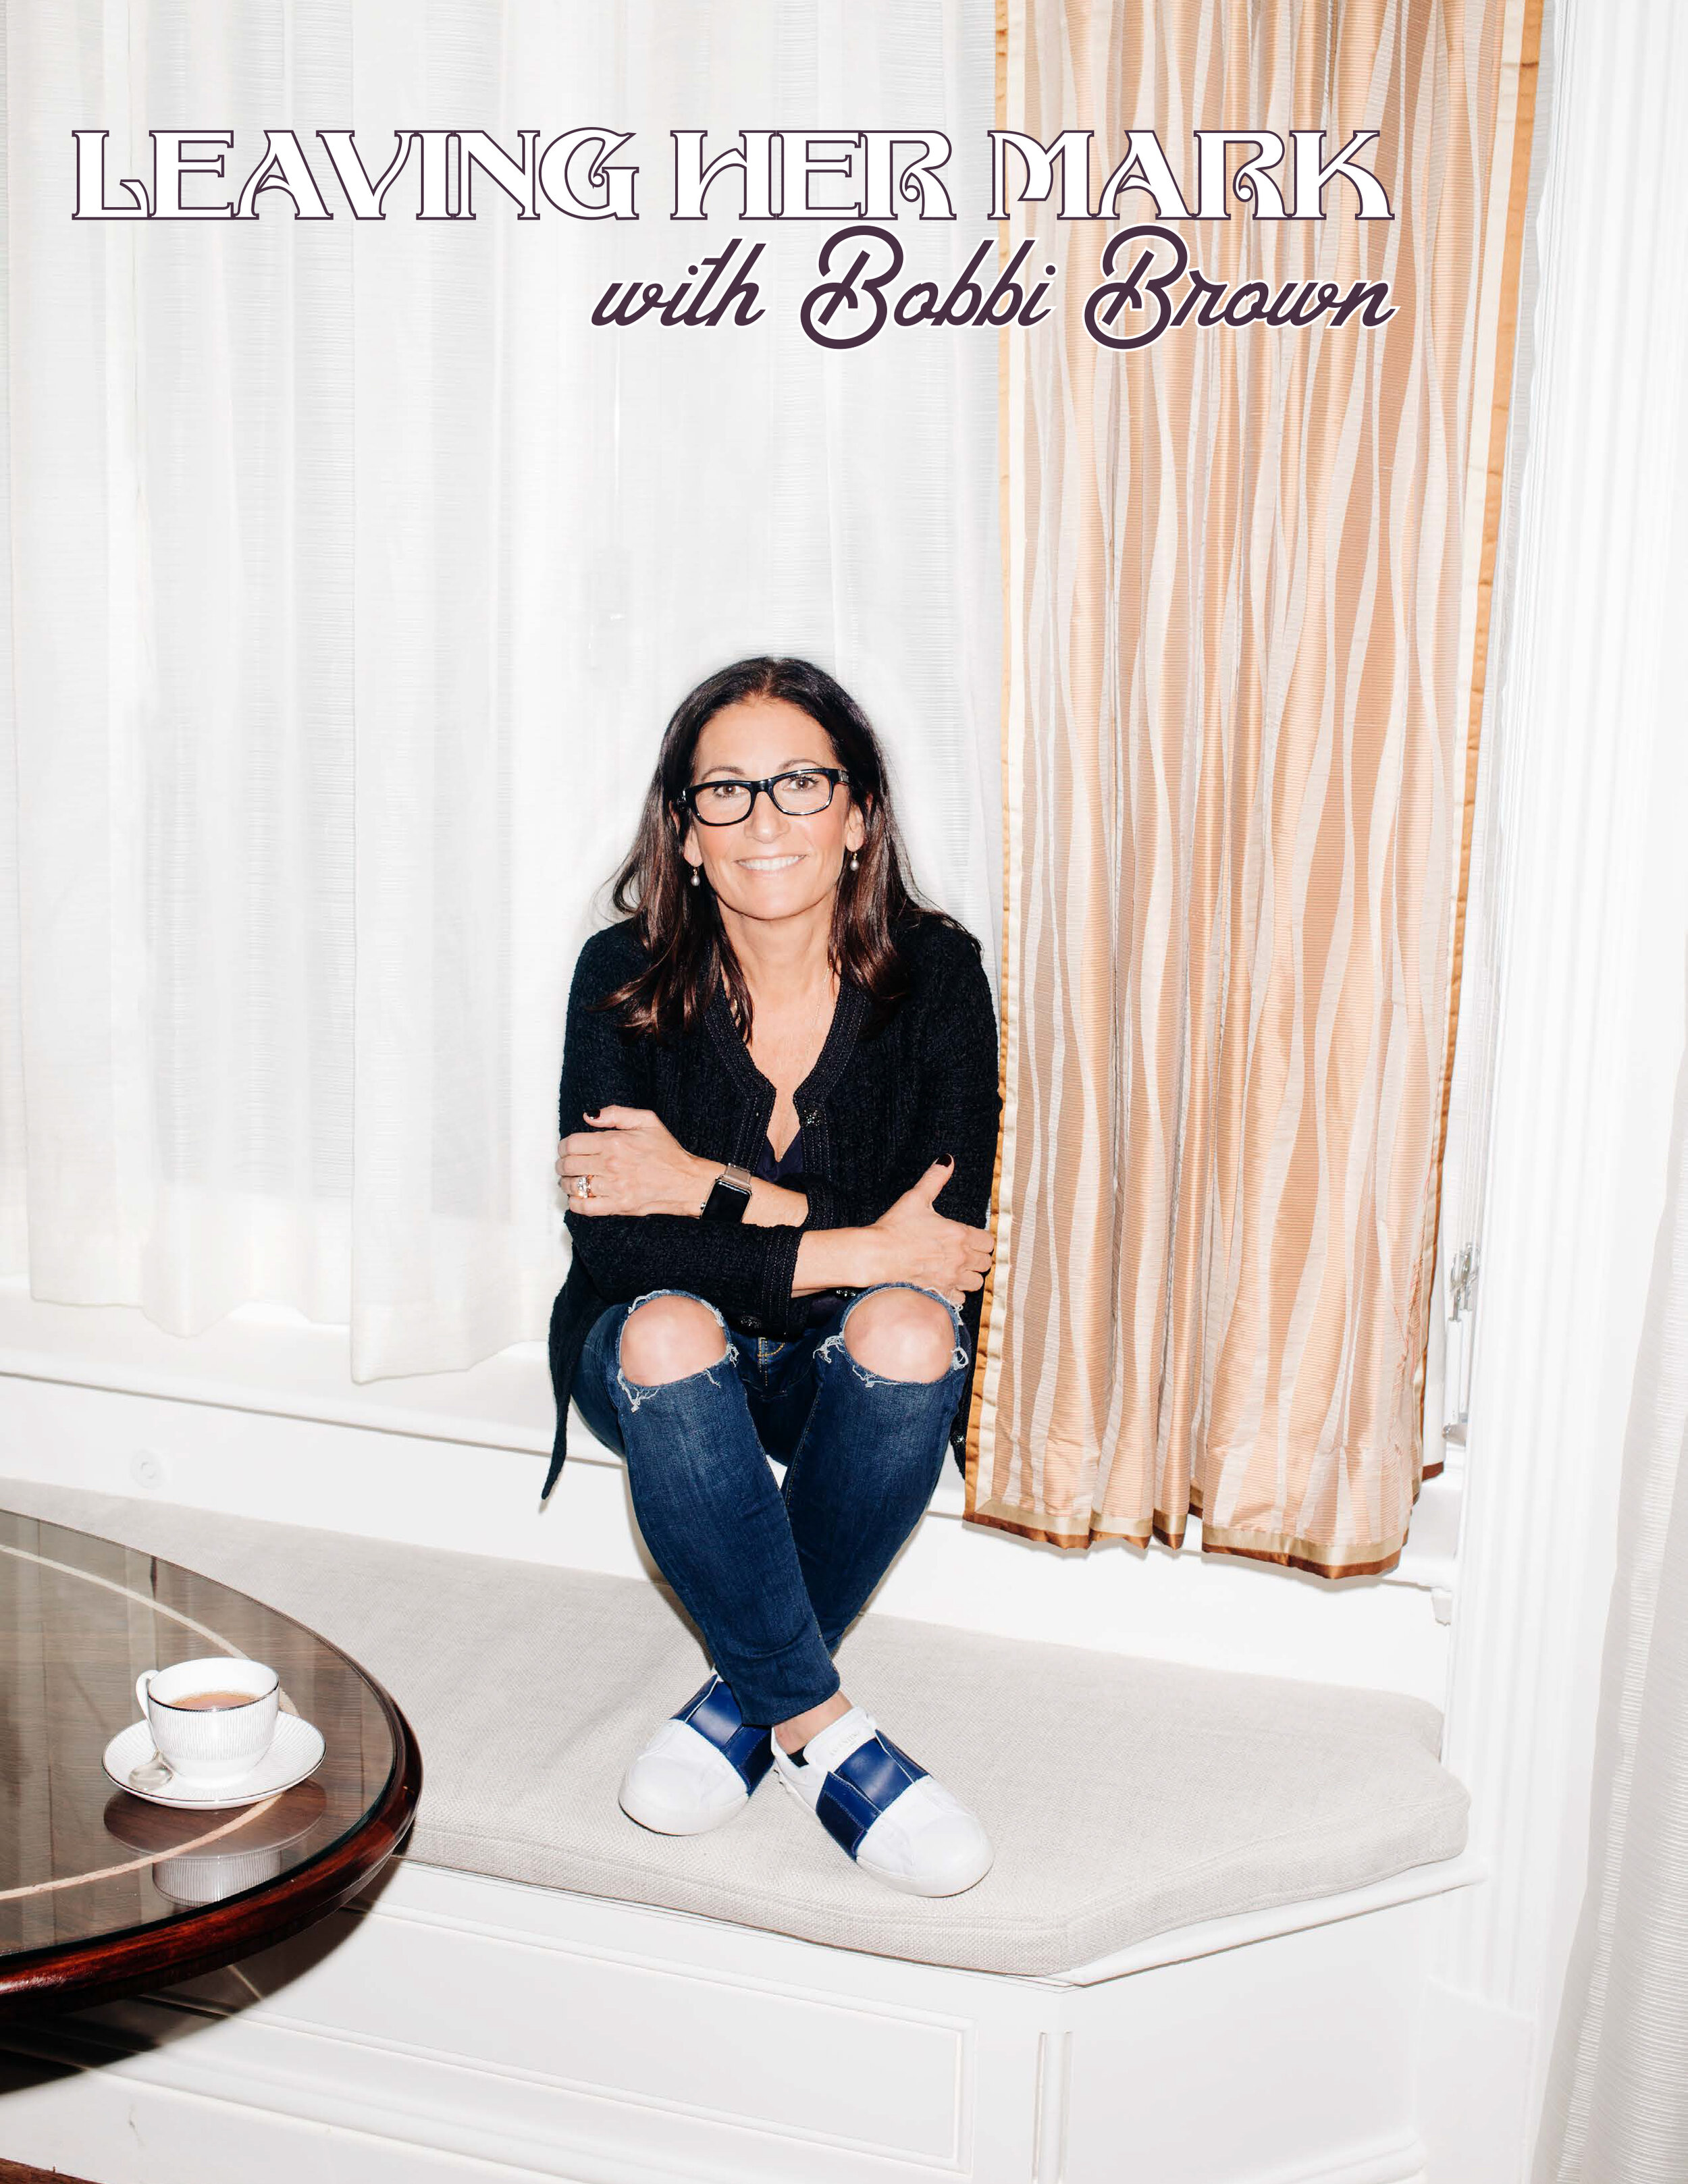 AM AUG LEAVING HER MARK WITH BOBBI BROWN-1.jpg